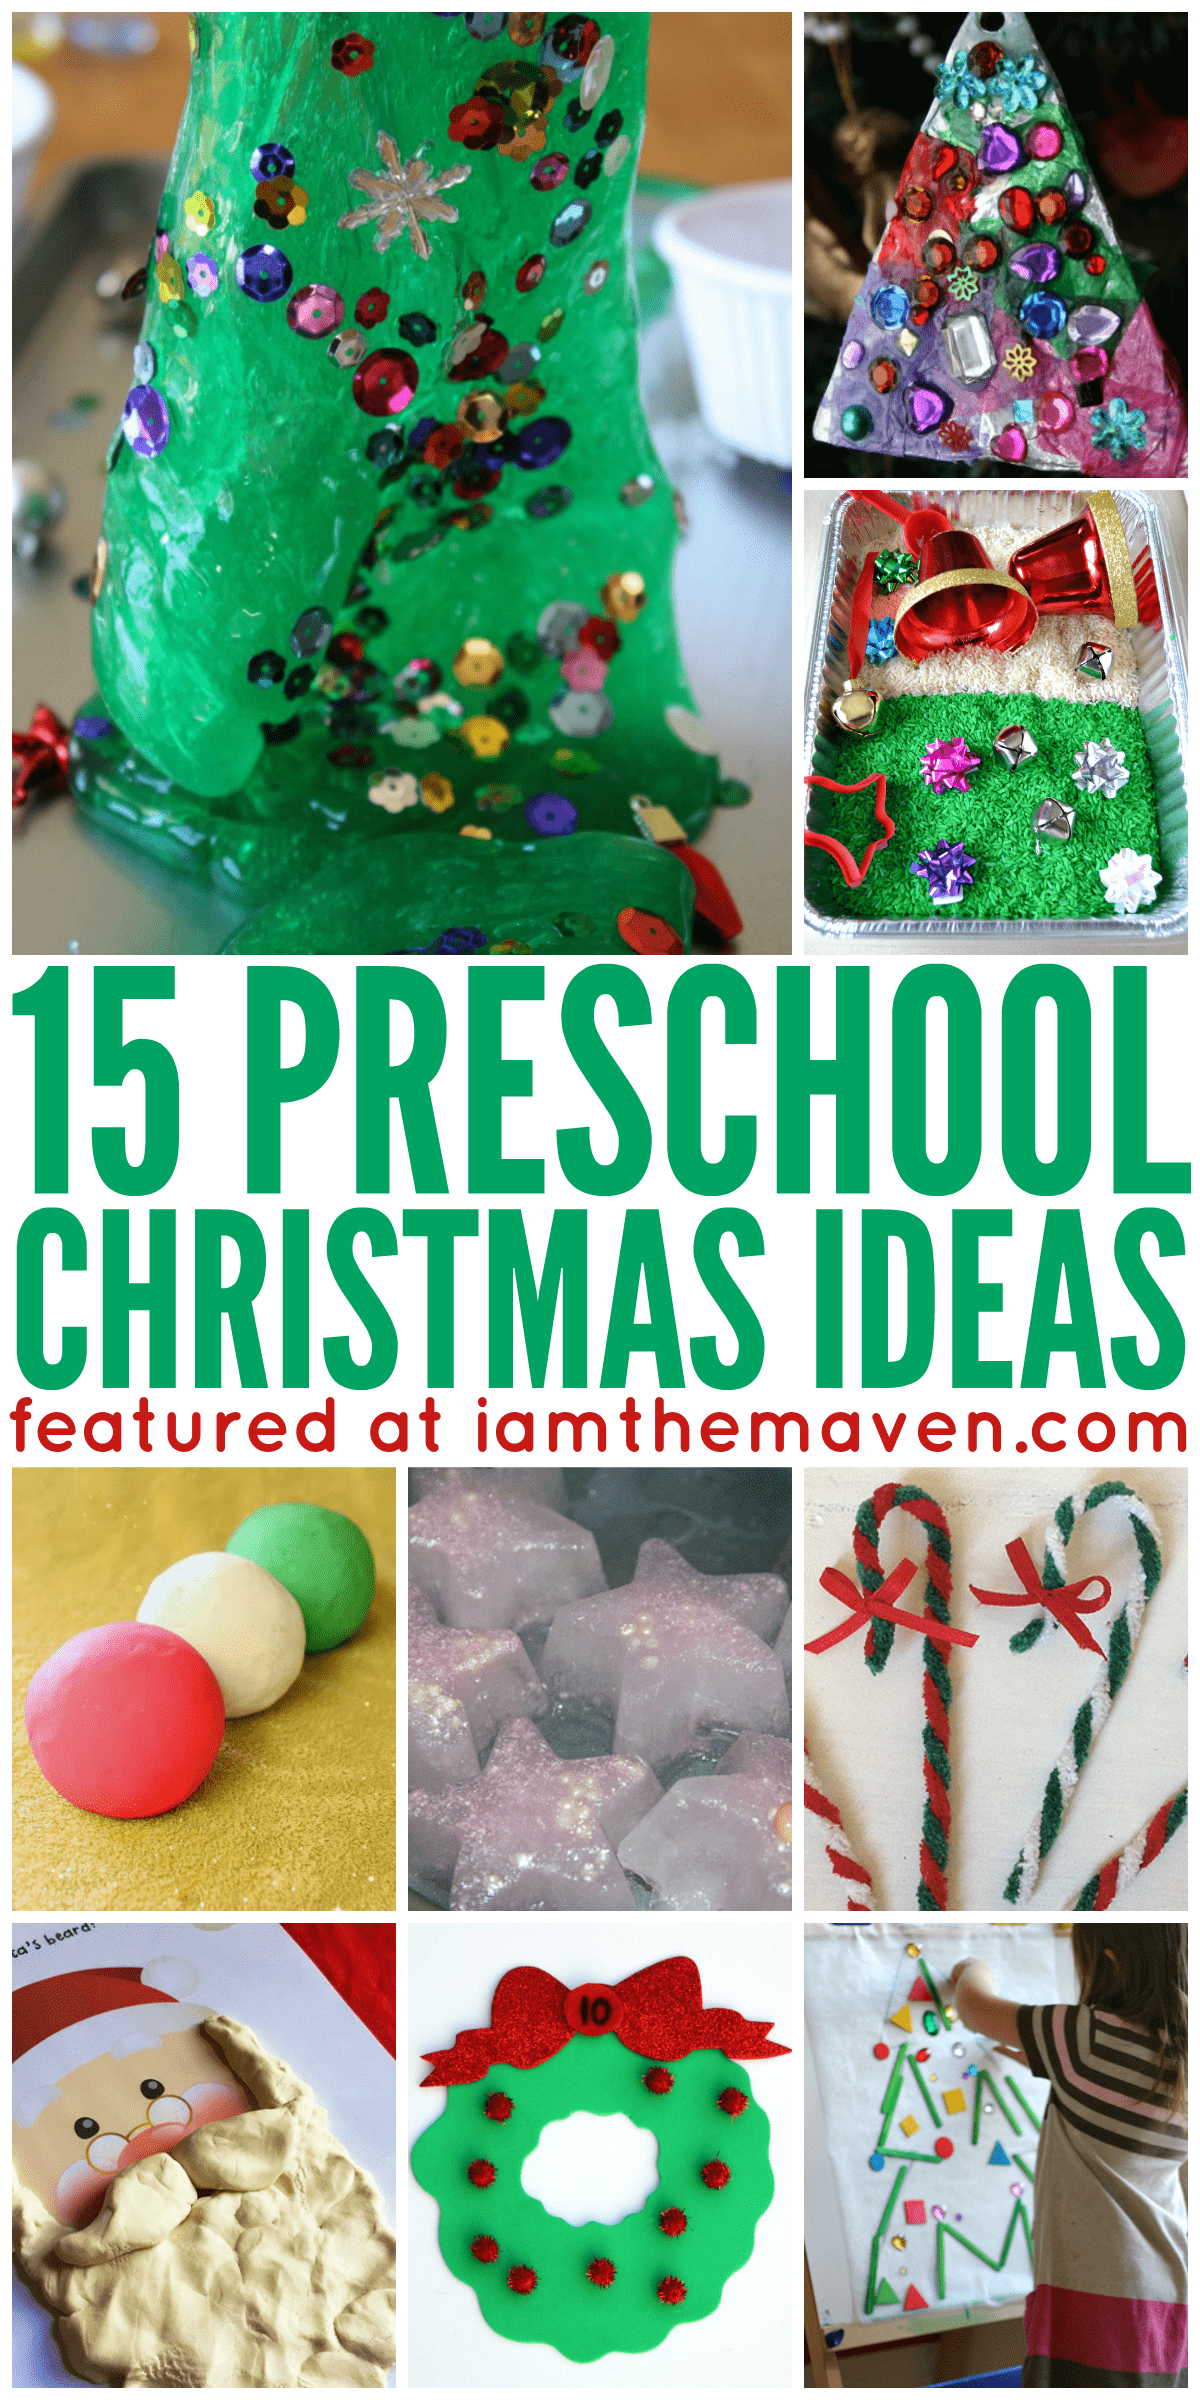 Try these fun preschool Christmas ideas!